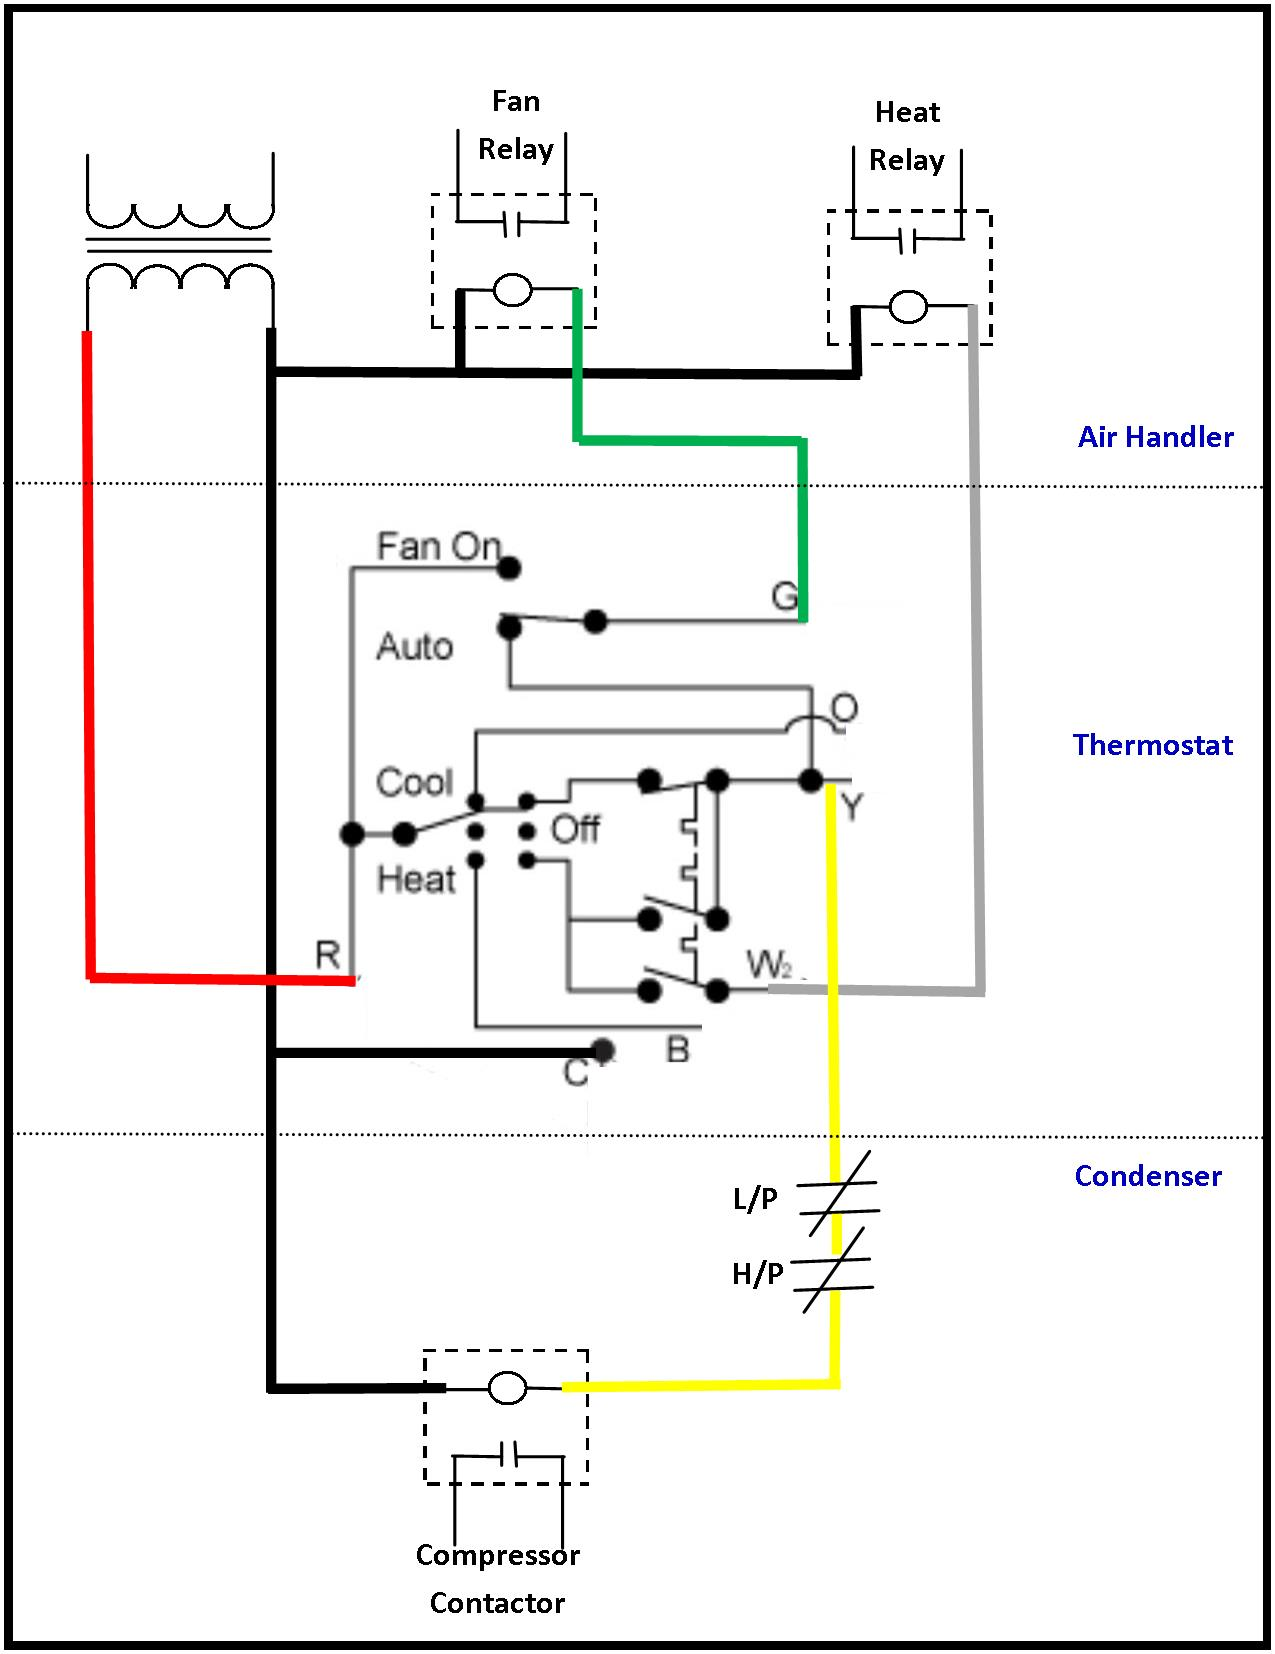 3 wire thermostat installation with Correct  Pressor Control Wiring on Honeywell Ra832a Wiring Diagram moreover Goodman Air Handler Wiring Diagrams together with Correct  pressor Control Wiring together with Honeywell Heating Controls Wiring Diagrams moreover Heater Wiring Diagram.